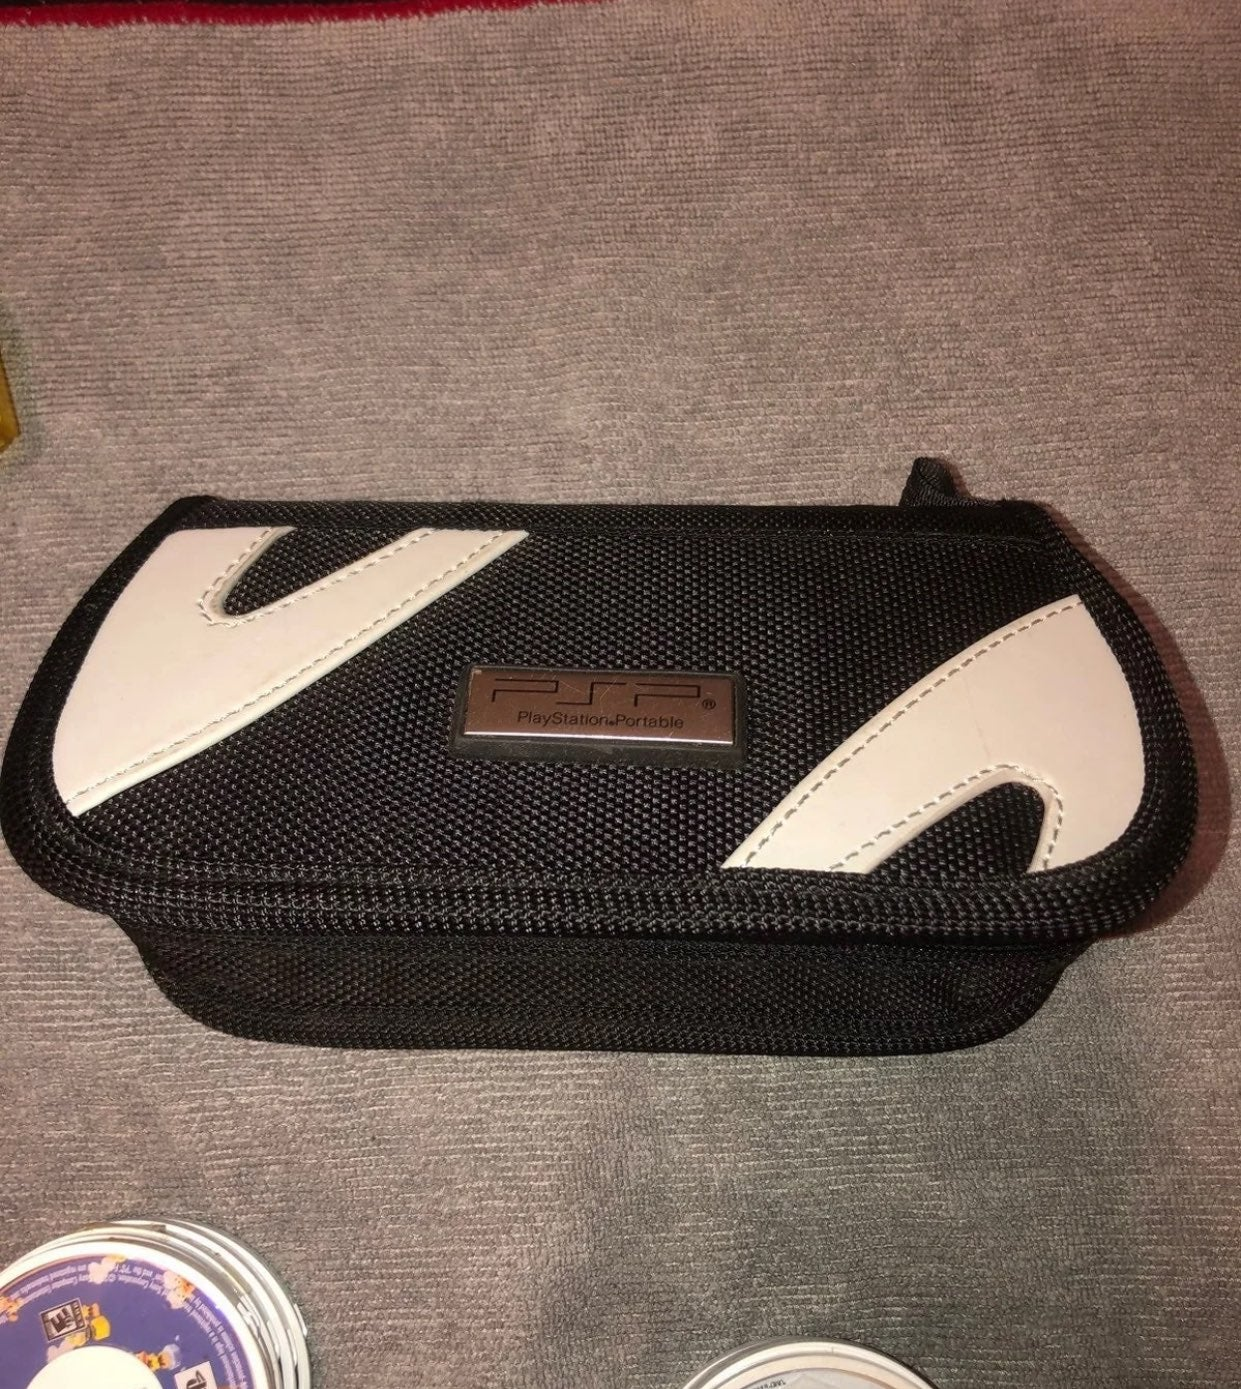 PSP Carry case